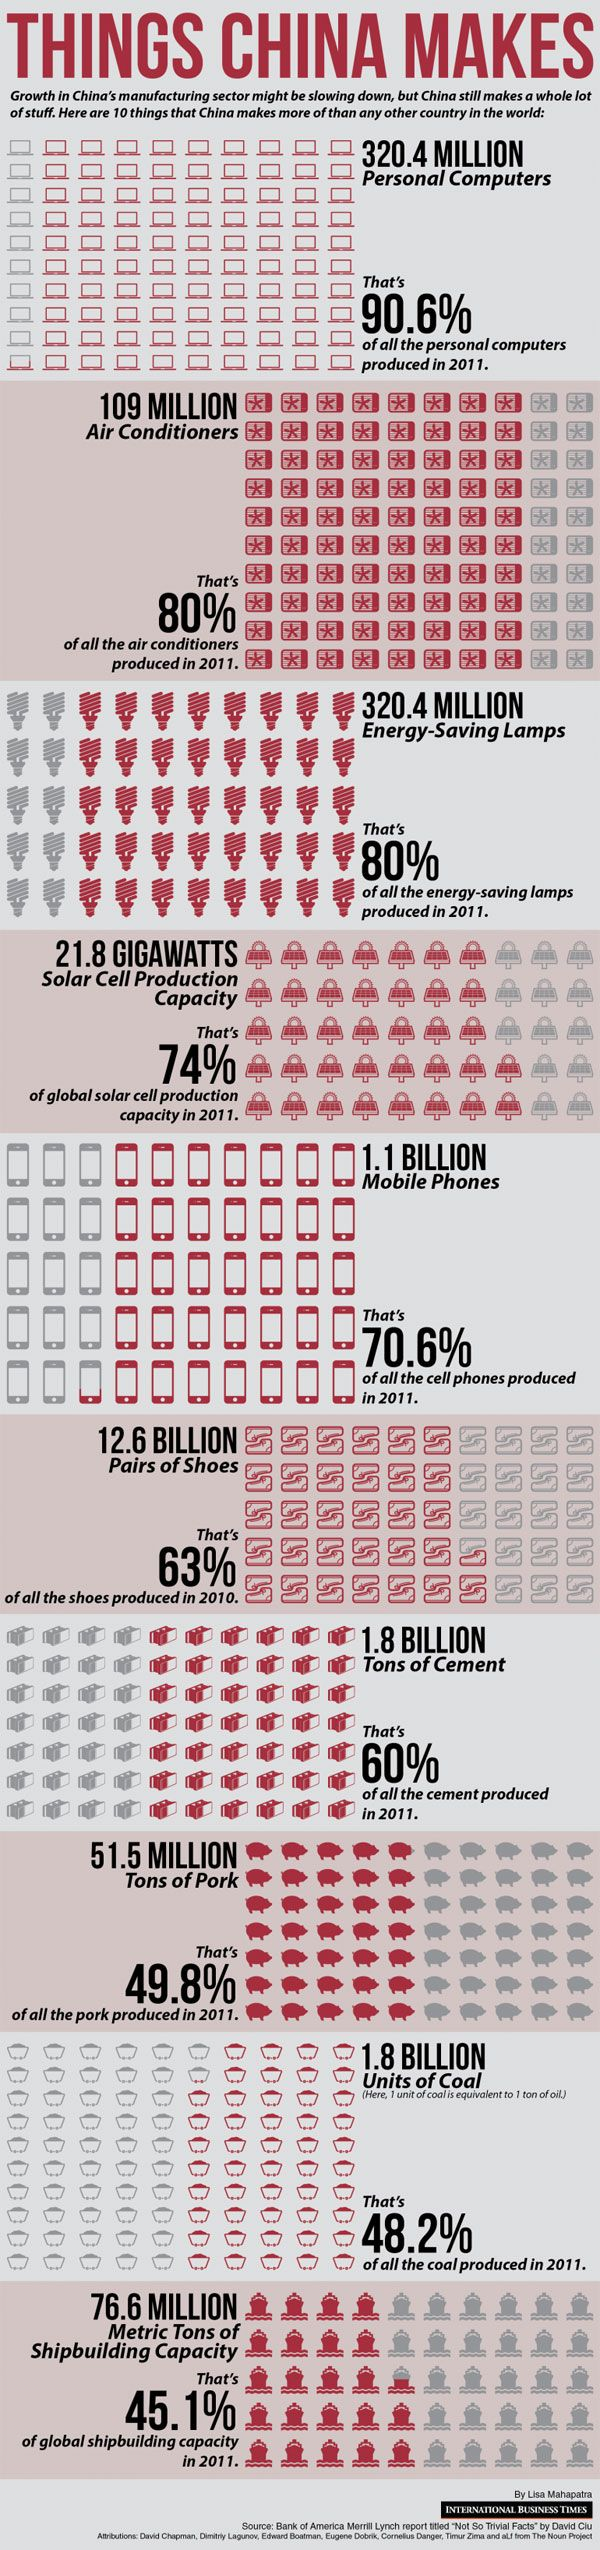 supply chain infographic chinese manufacturing